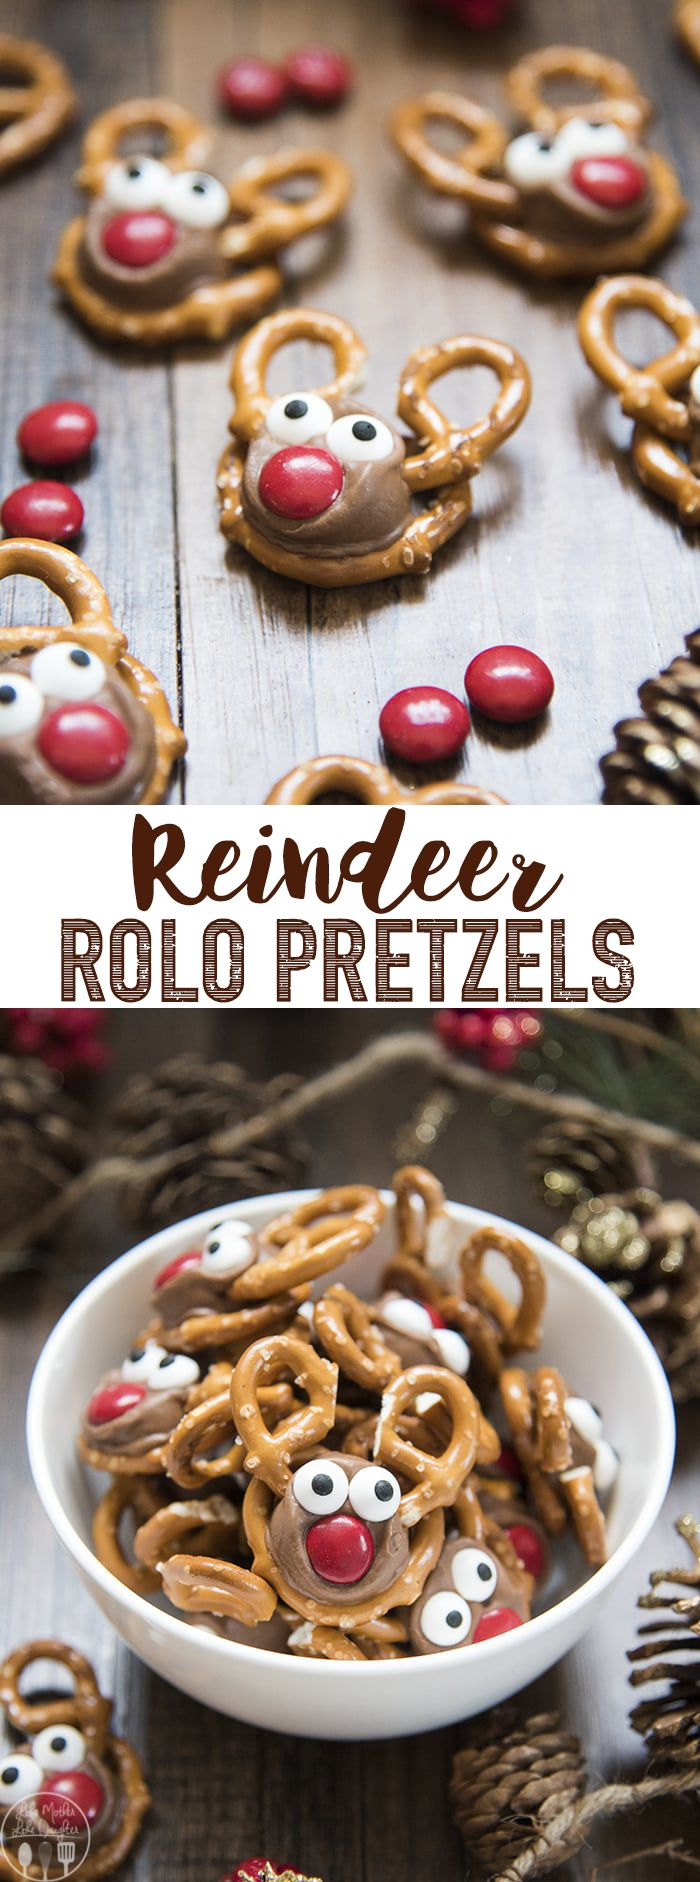 Rolo Pretzel Reindeer – Like Mother, Like Daughter